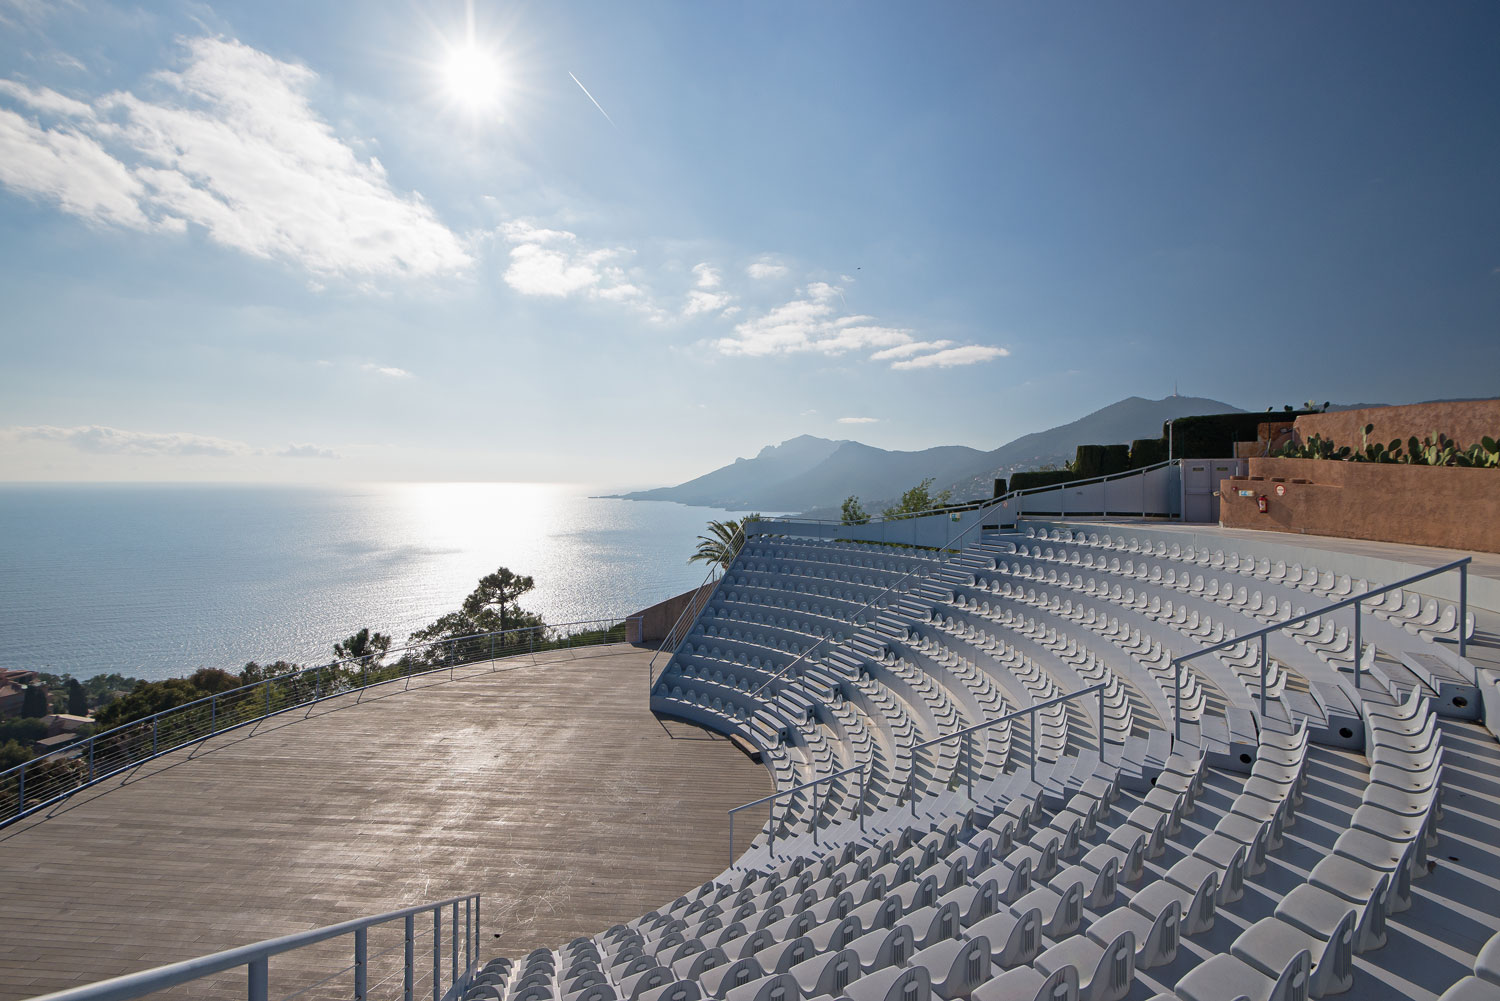 Hungarian architect Antti Lovag is the creative genius behind the iconic Bubble Palace; included in the jaw-dropping features is a 500-seat amphitheater overlooking the Bay of Cannes.